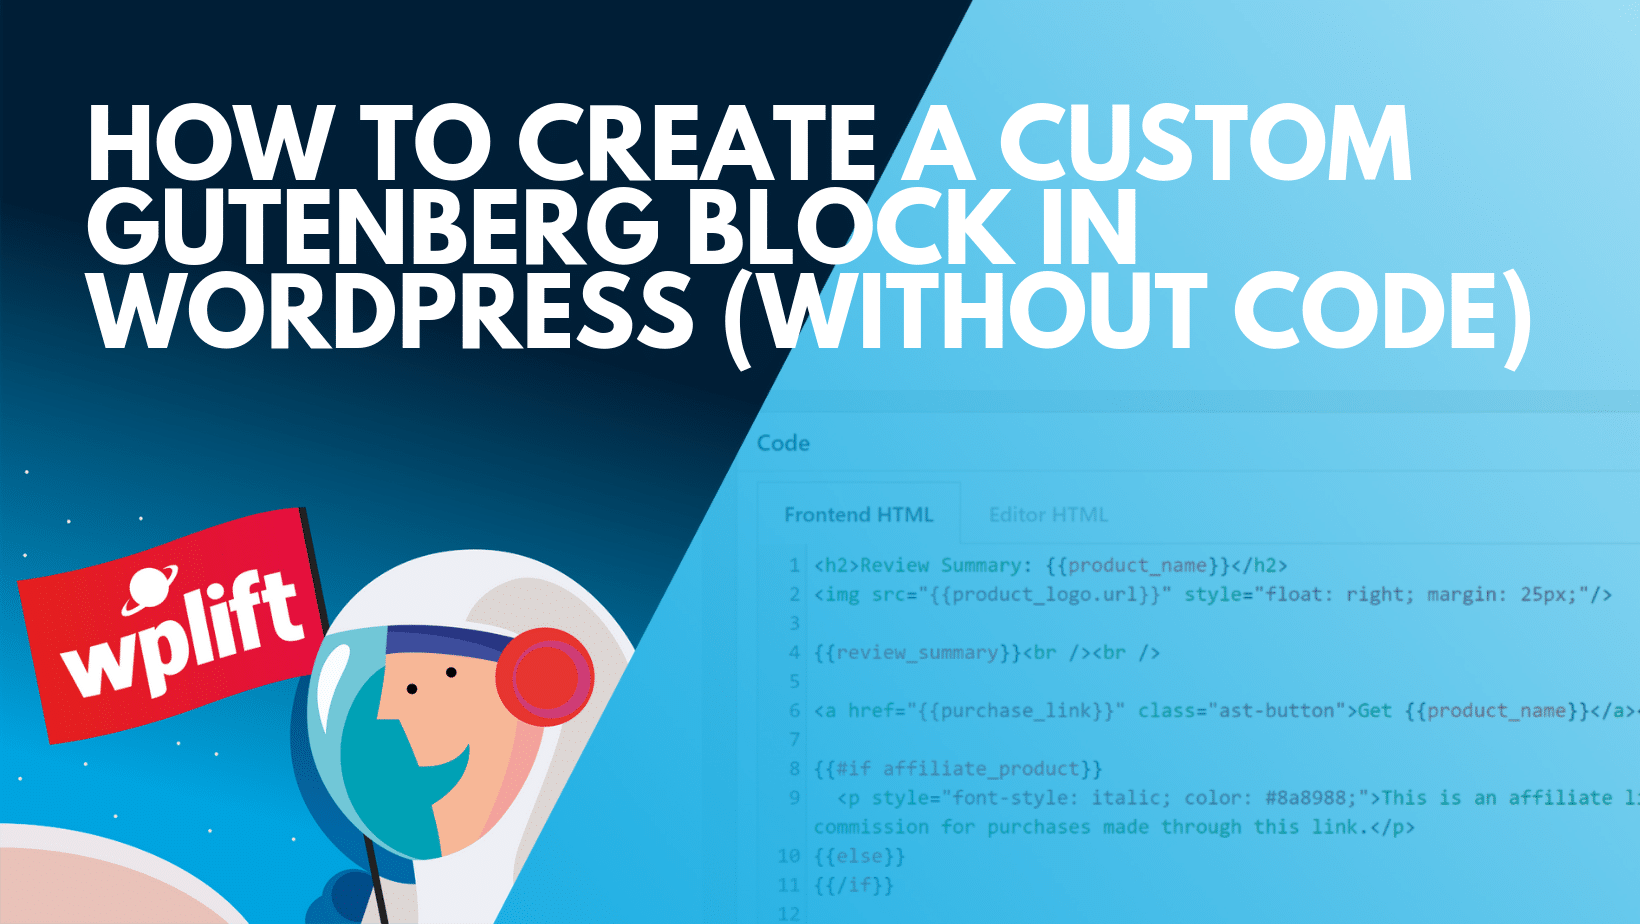 How to Create a Custom Gutenberg Block in WordPress (Without Code)